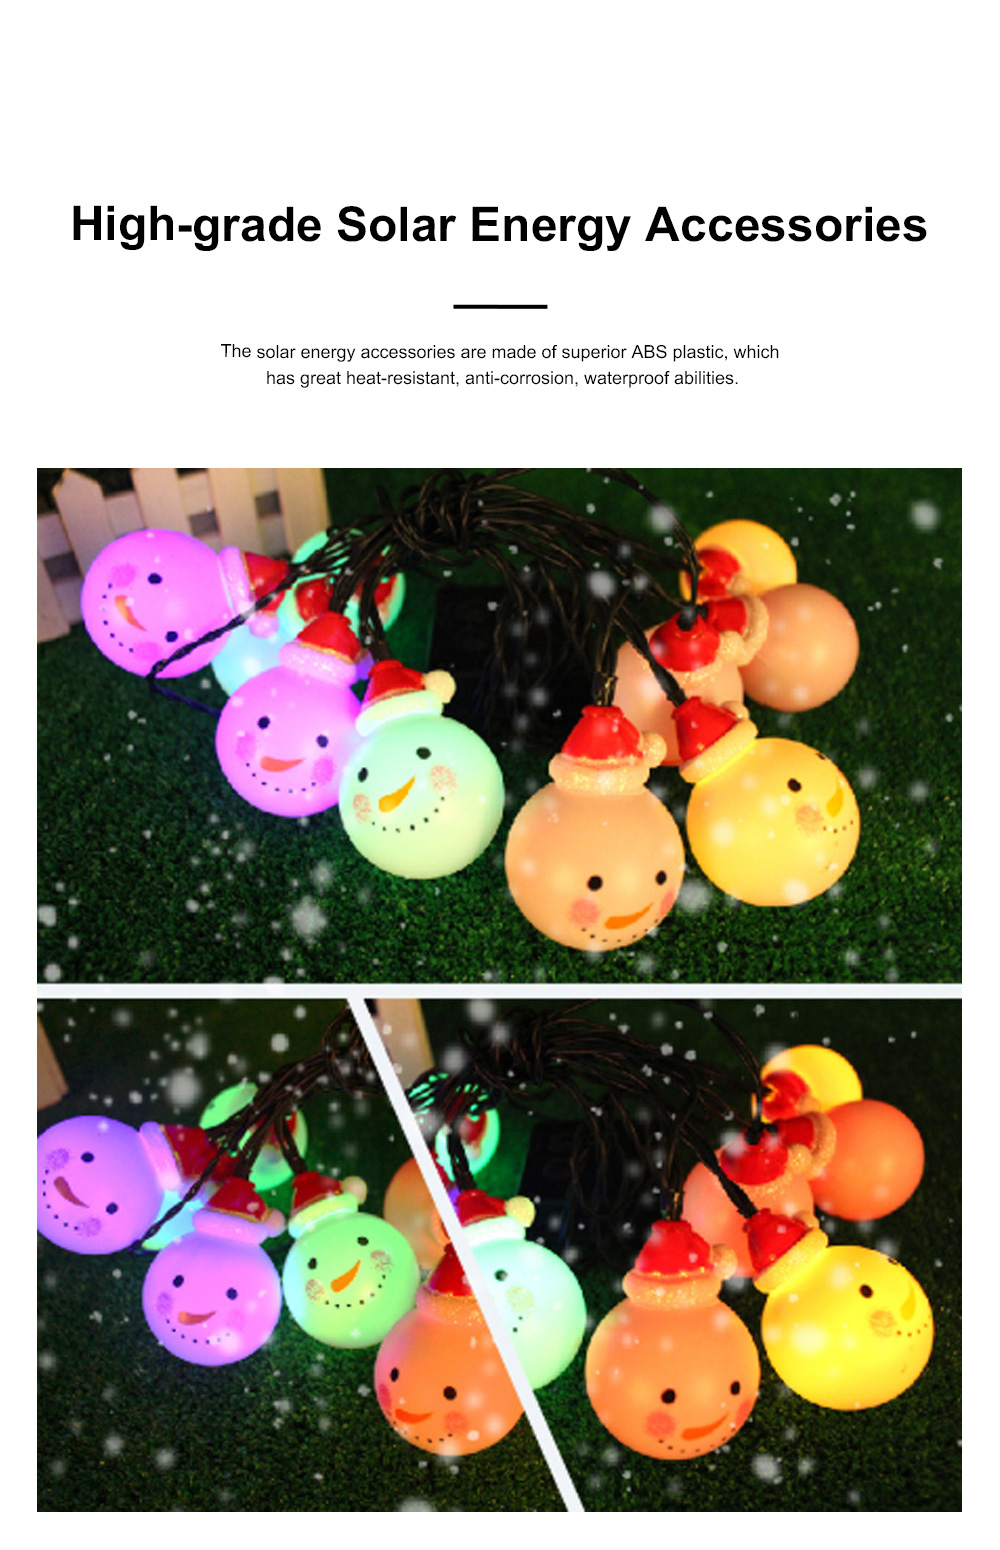 Cute Delicate 10 20 30 Leds Cozy Romantic Snowman Lights String Christmas Lamps Party Courtyard Decoration Ornaments 3